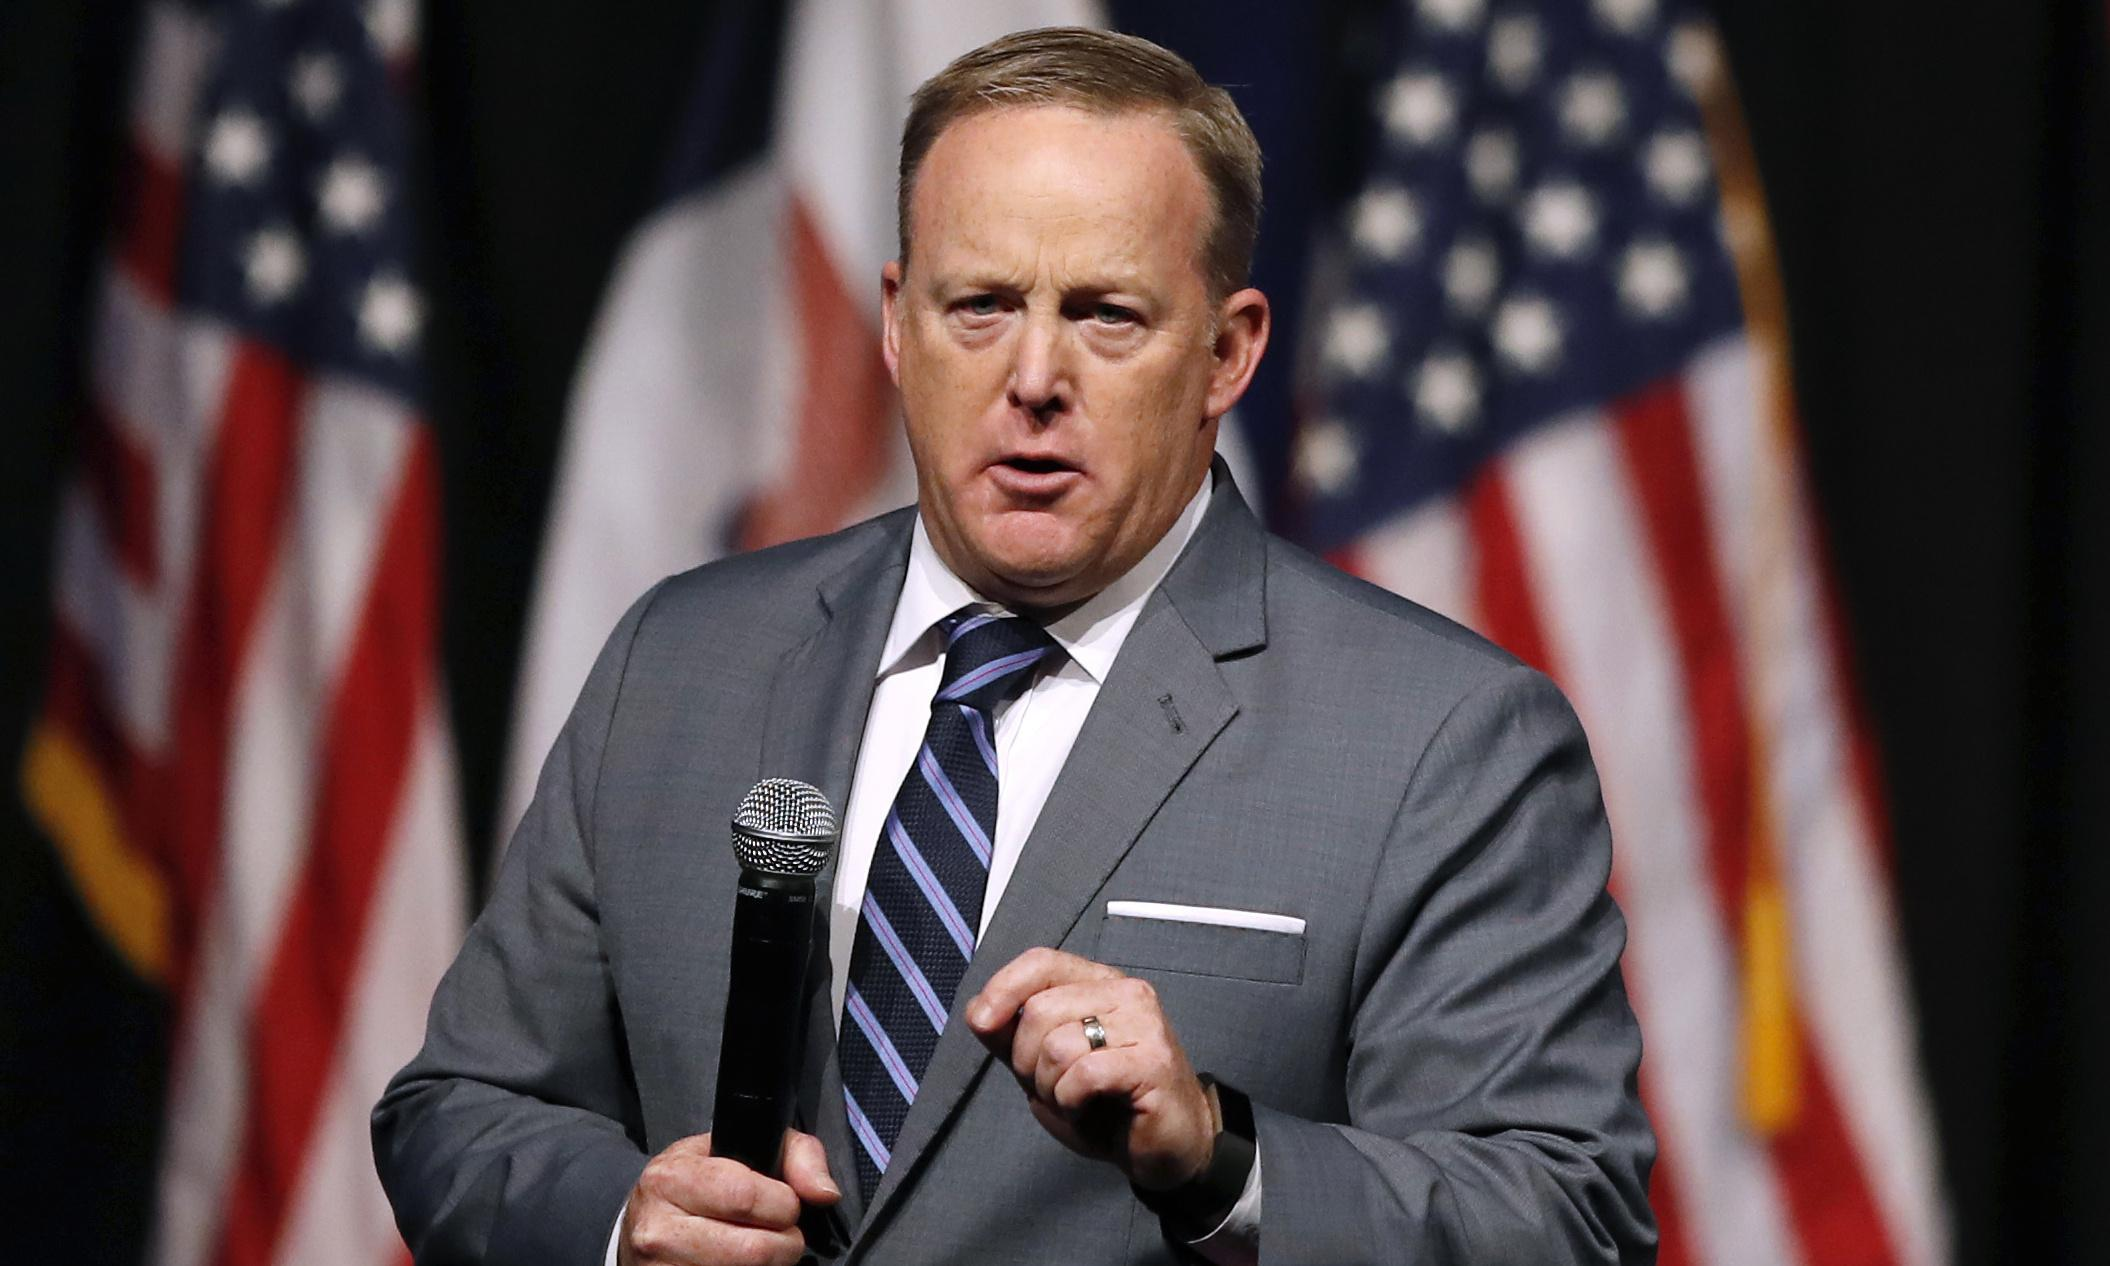 Sean Spicer set to join Dancing with the Stars